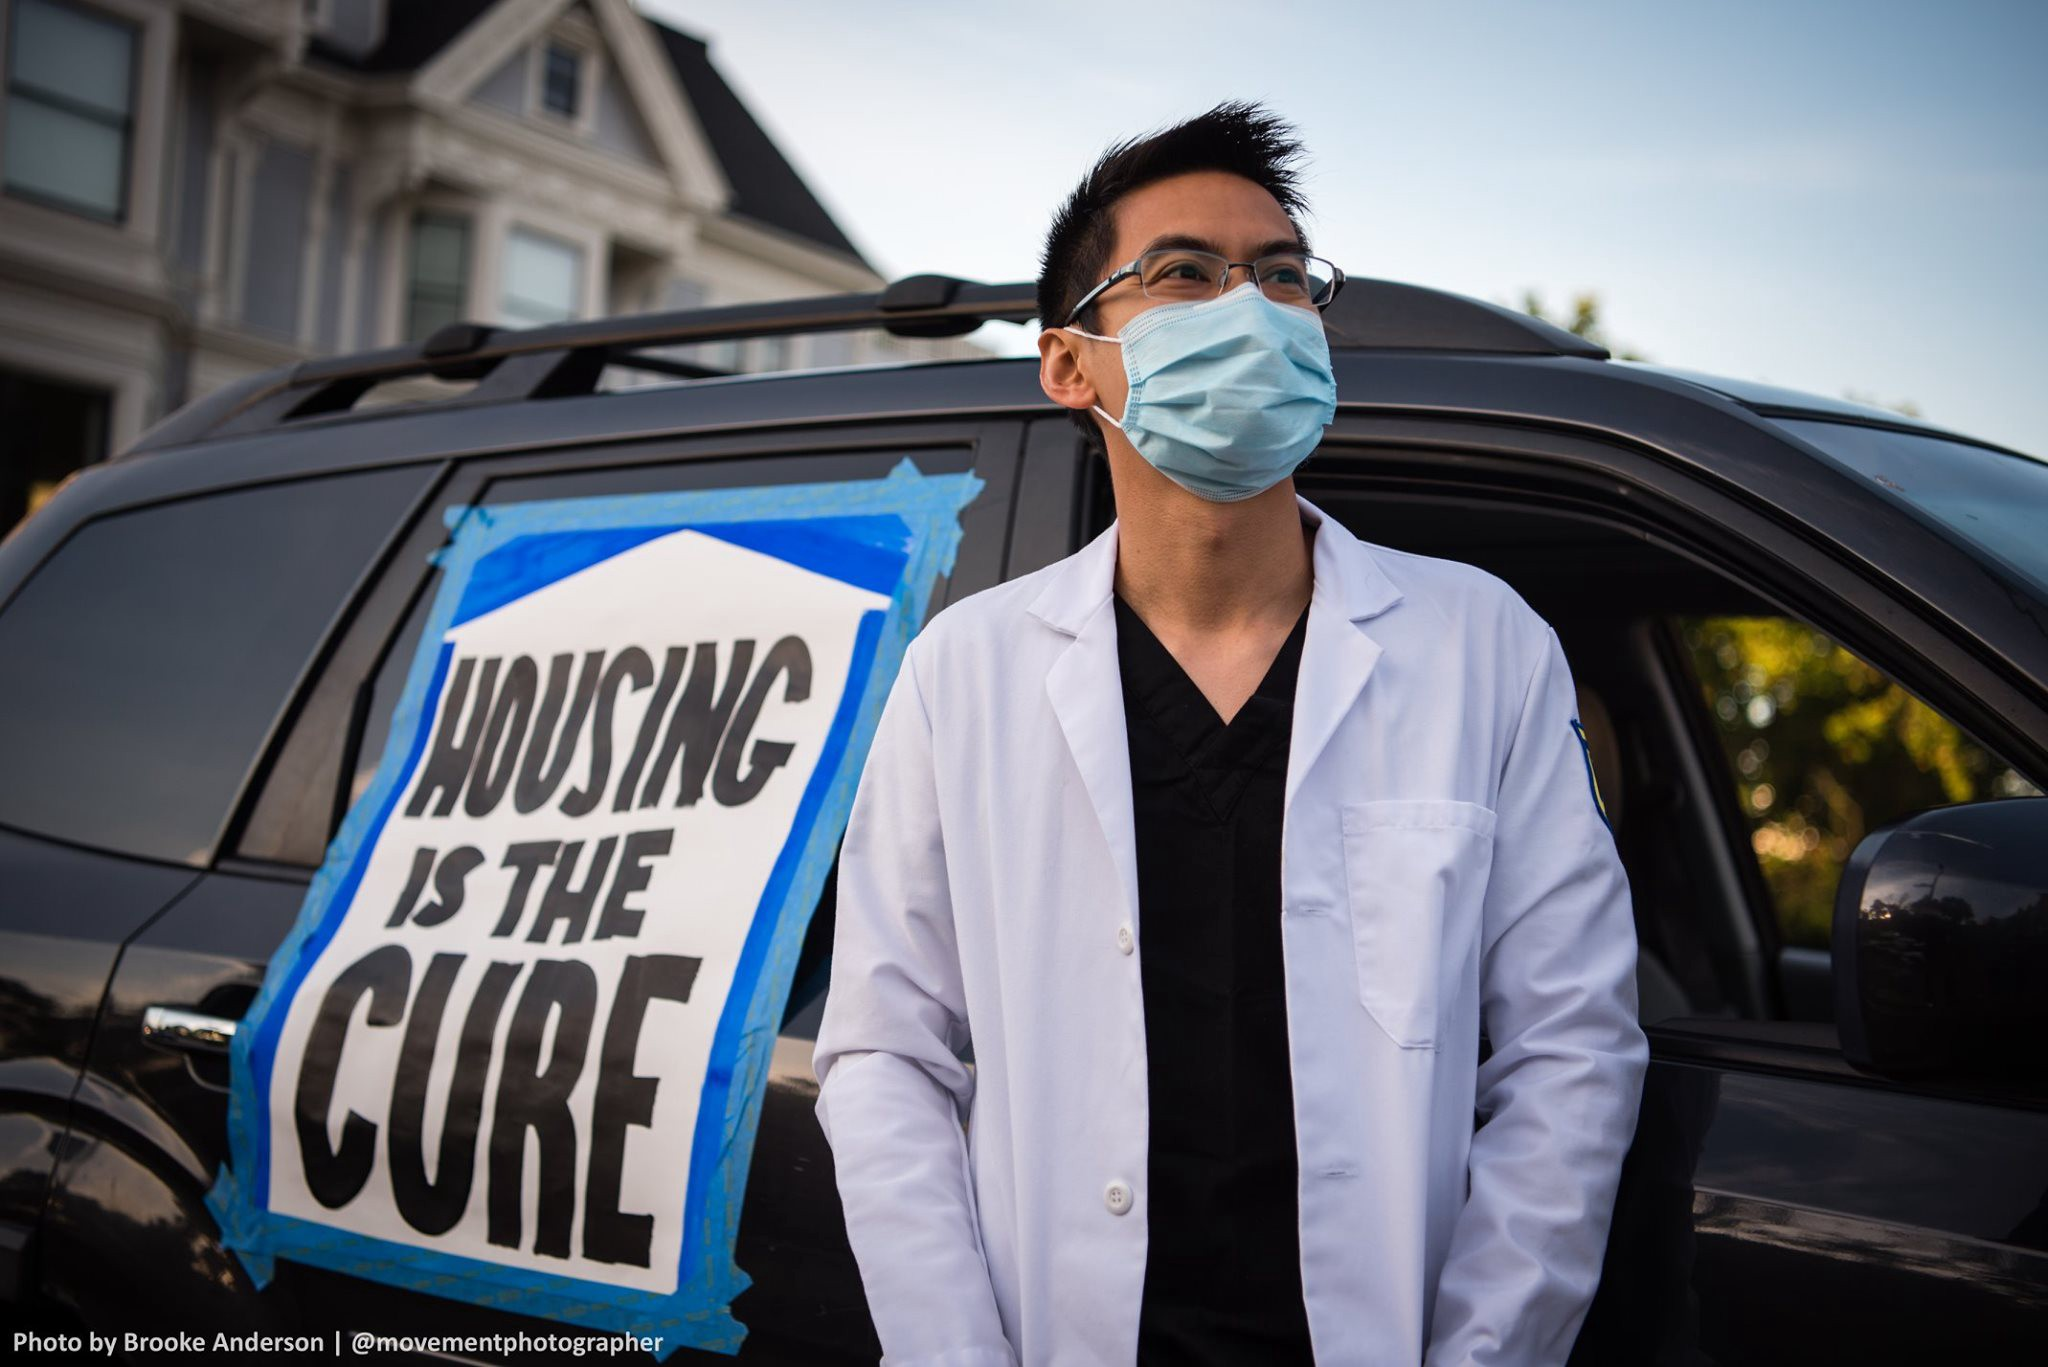 "A person in a medical mask and white doctor's coat stands in front of a vehicle with a sign that reads ""HOUSING IS THE CURE"""